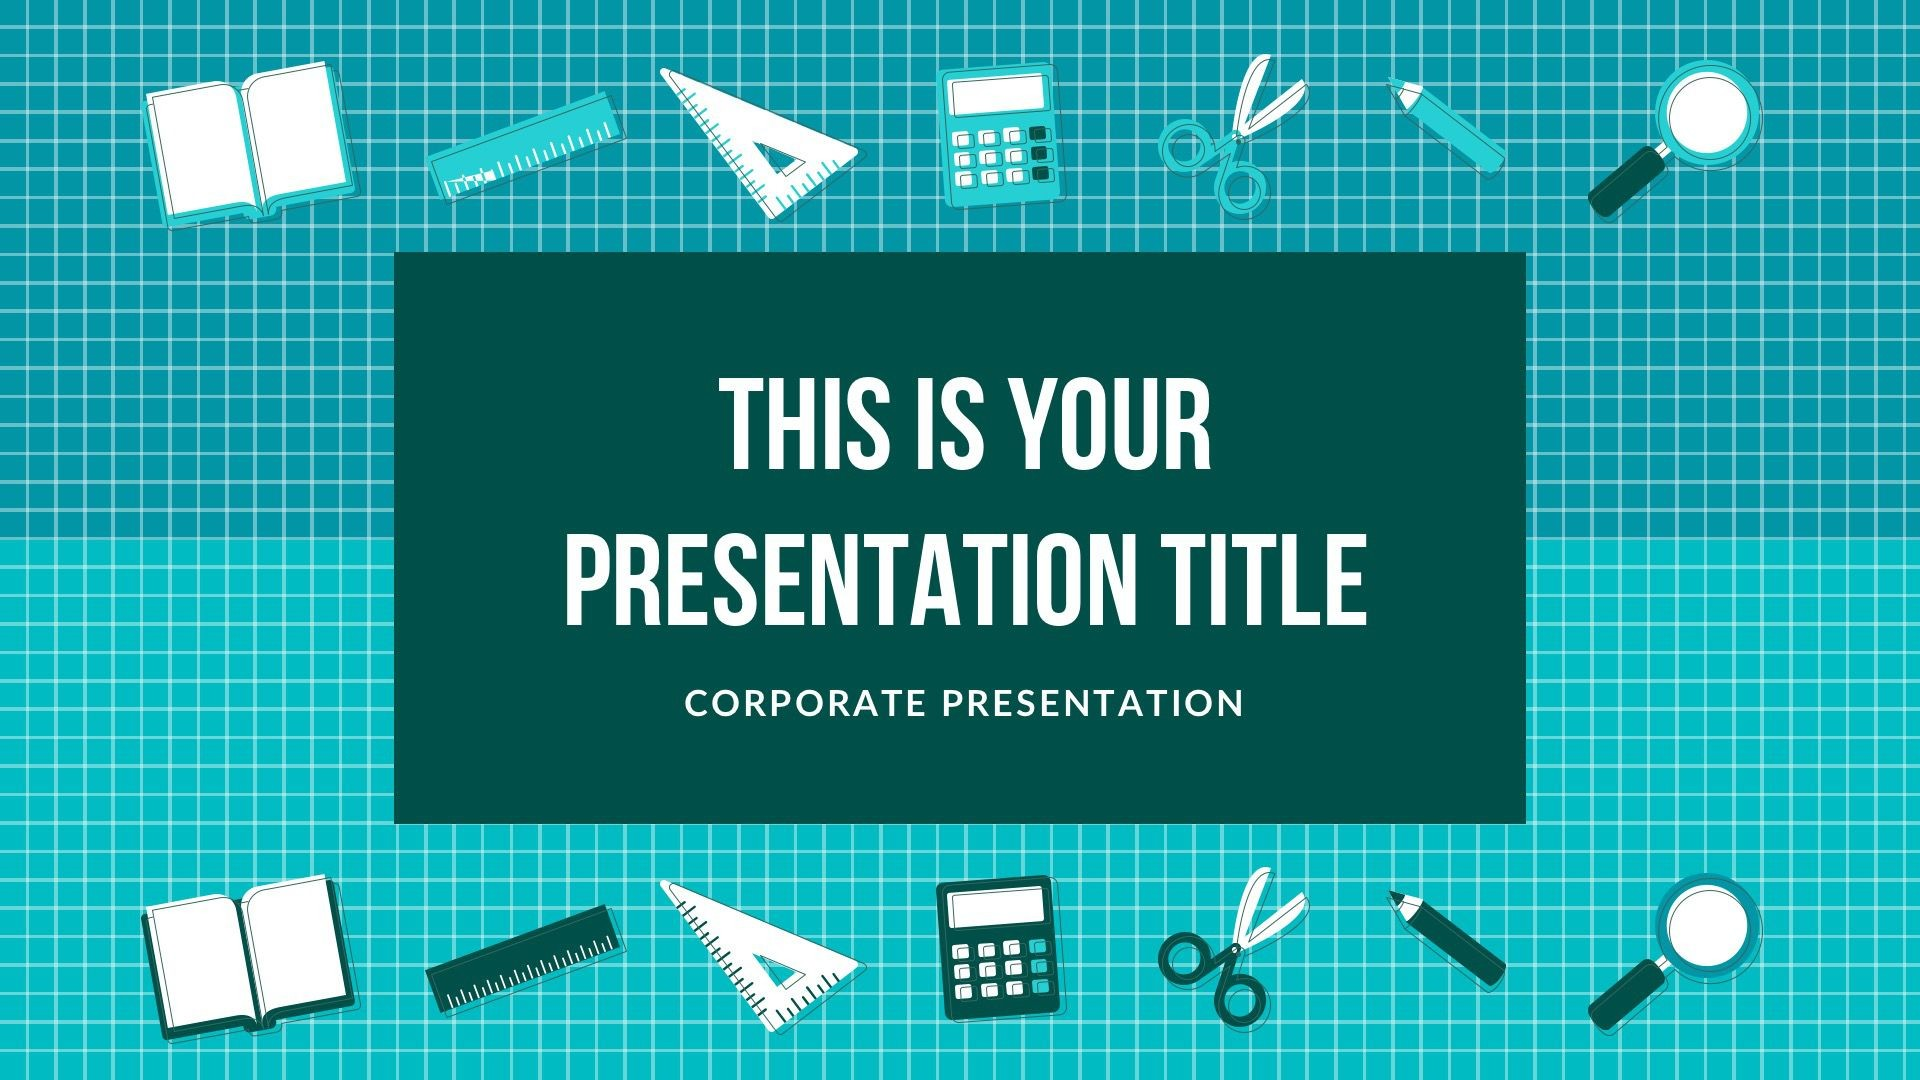 001 Formidable Free Education Powerpoint Template Photo  Templates Physical Download Downloadable For Teacher Design1920